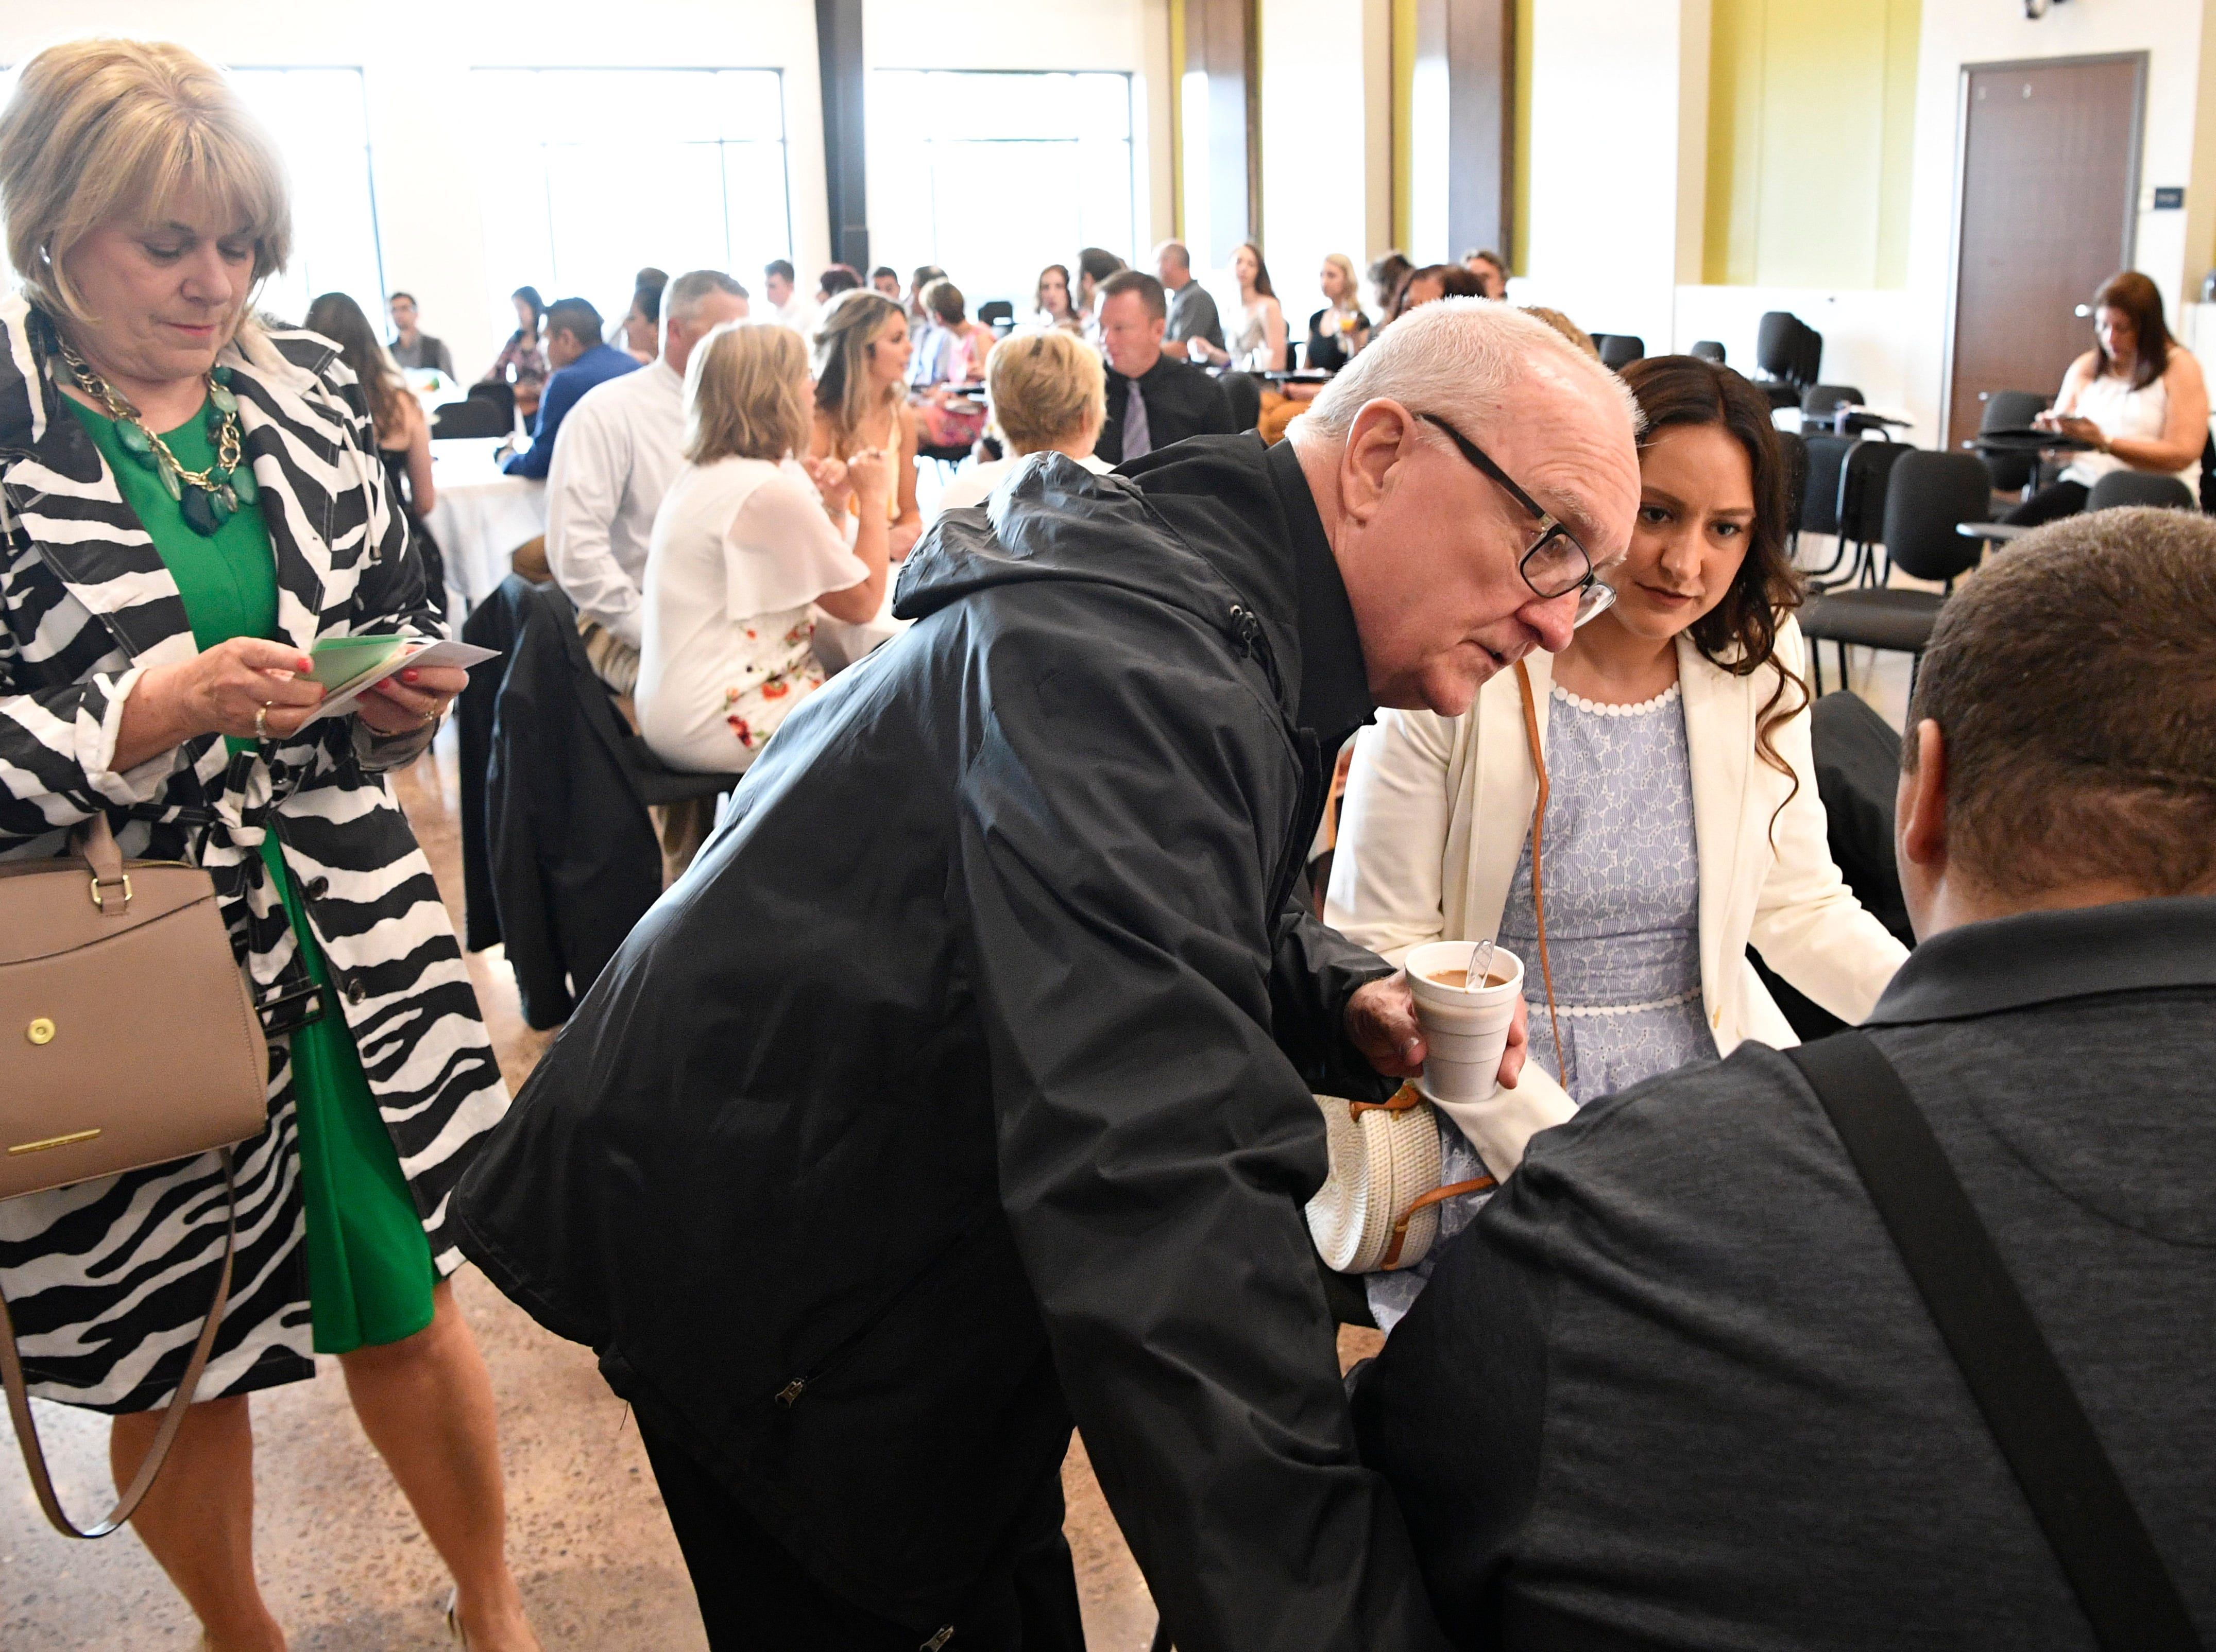 Brian Schnelle talks with his family before graduating from Trevecca on Saturday after 12 years as a student. He is on the autism spectrum & has pursued his degree for all those years, taking about 6 credits a semester Saturday, May 4, 2019, in Nashville, Tenn.